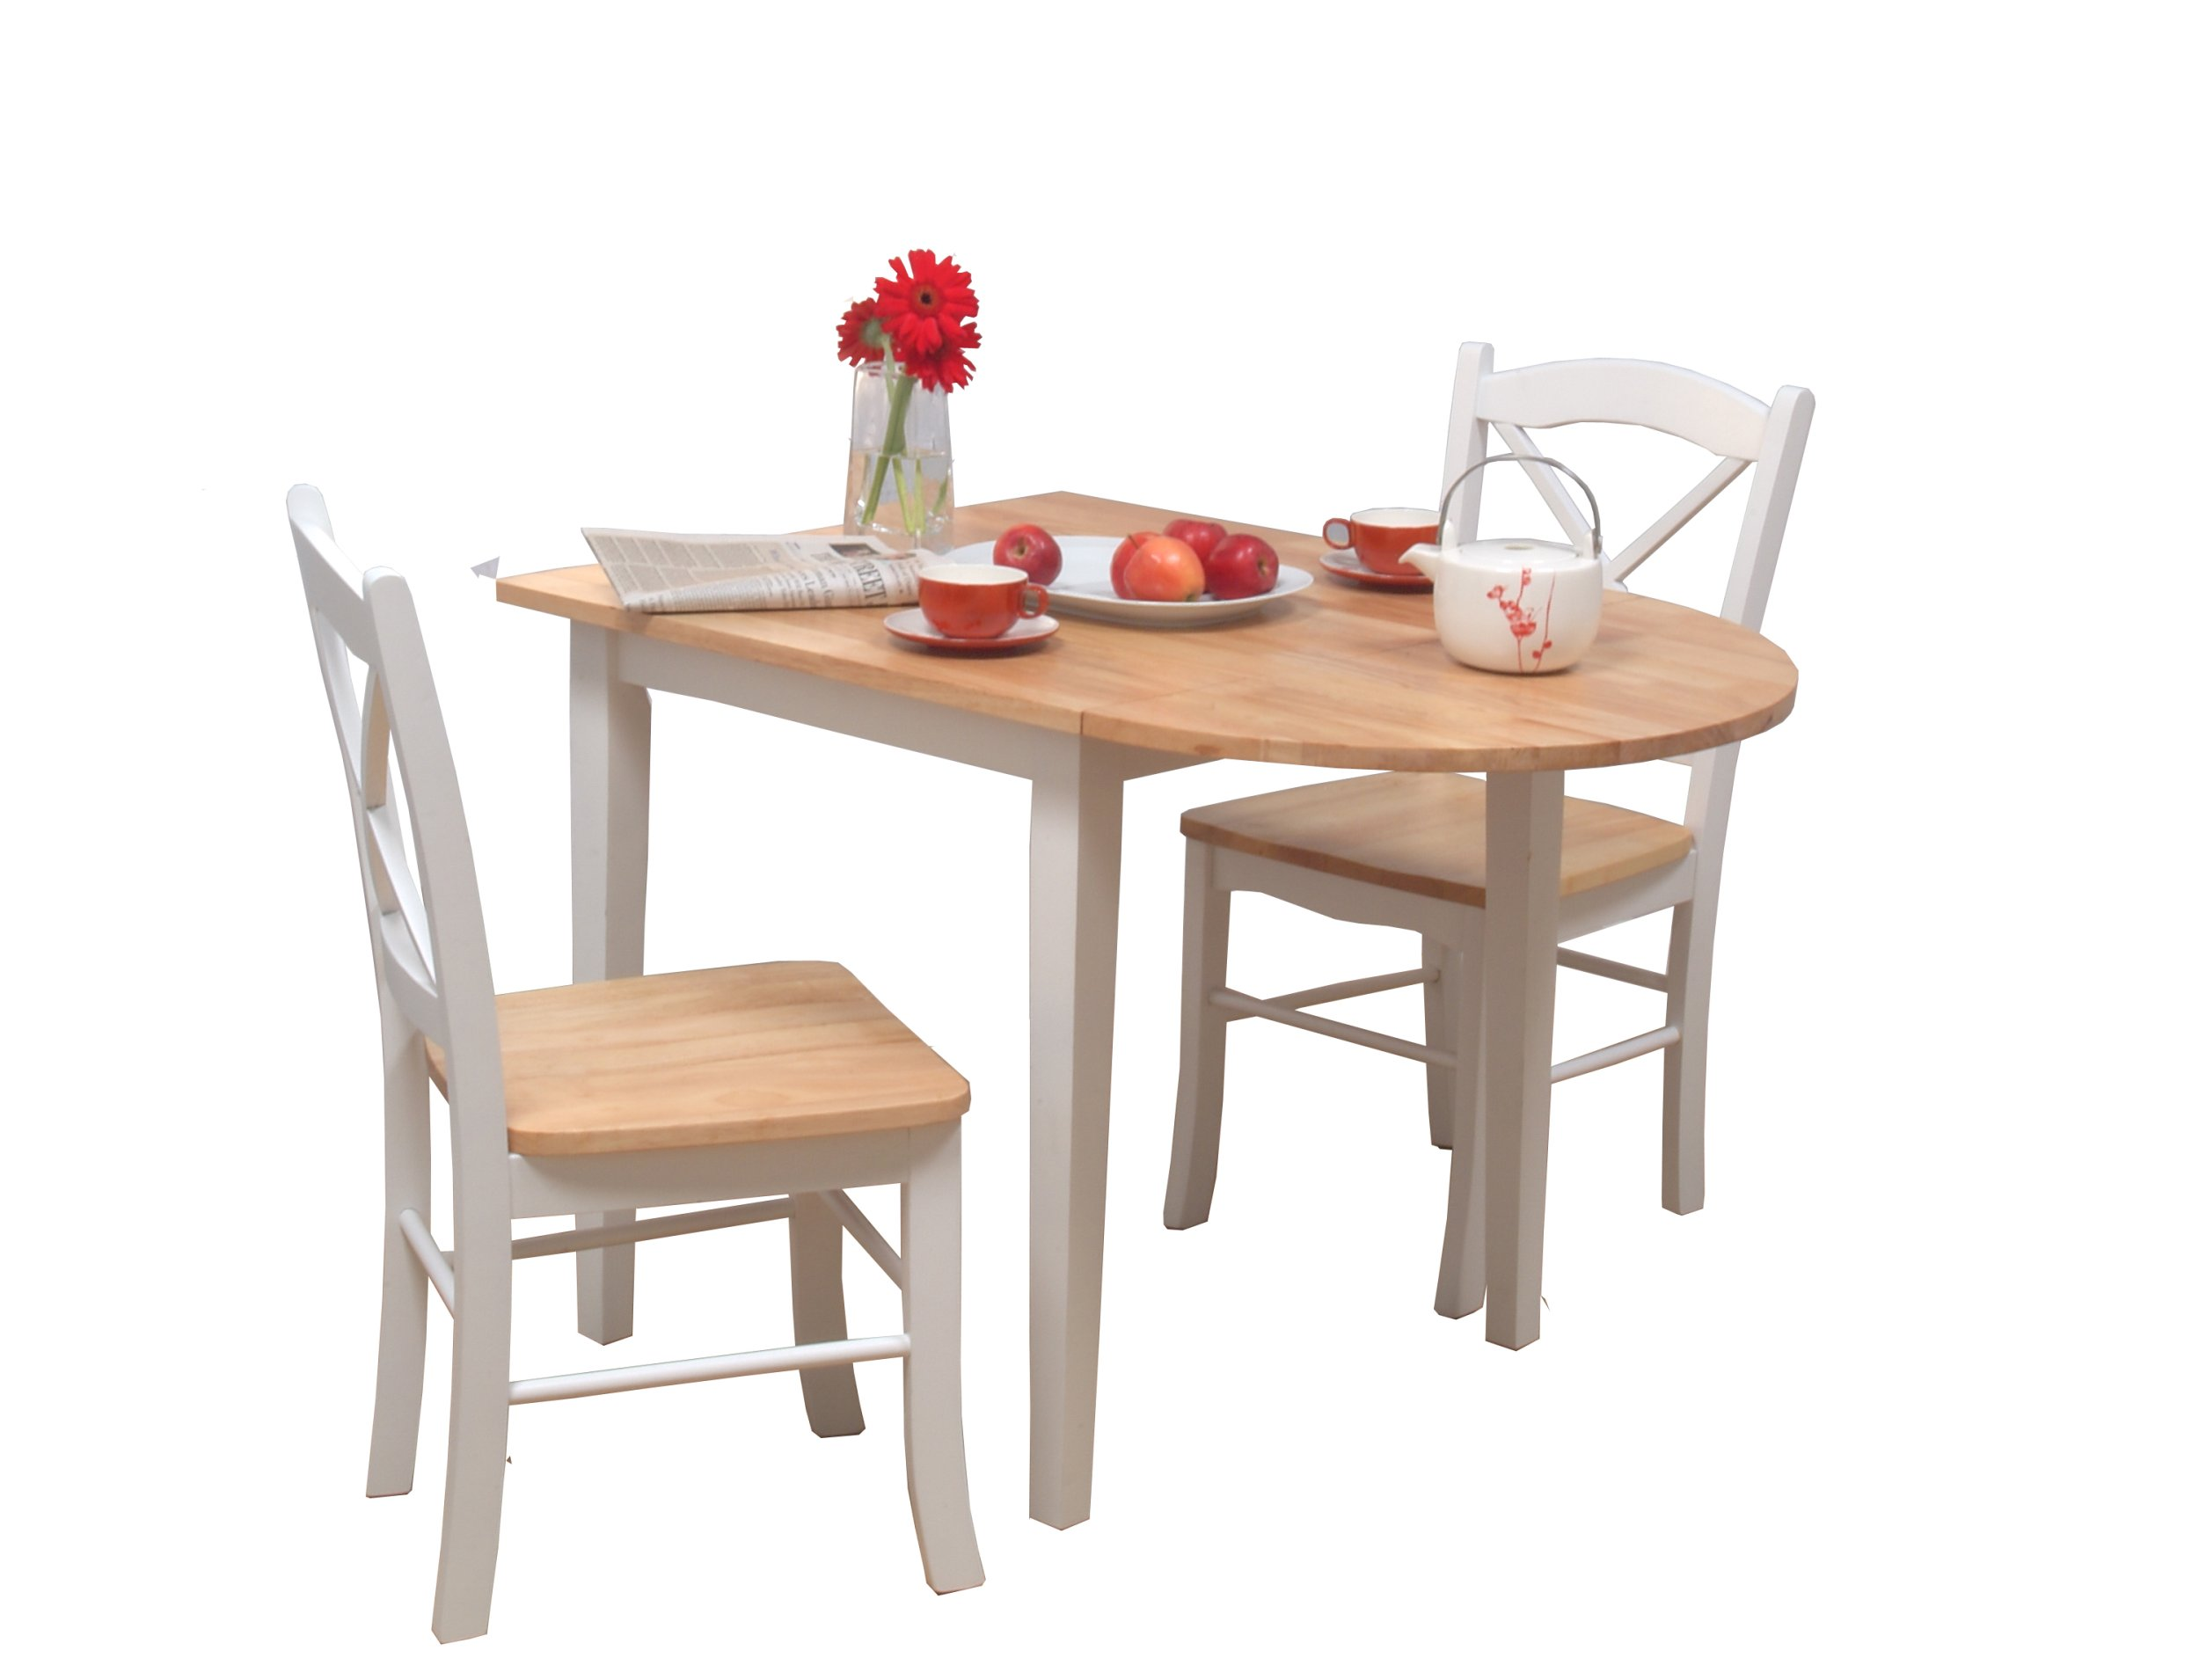 Target Marketing Systems 3 Piece Tiffany Country Cottage Dining Set with 2 Chairs and a Drop Leaf Table, White/Natural by Target Marketing Systems